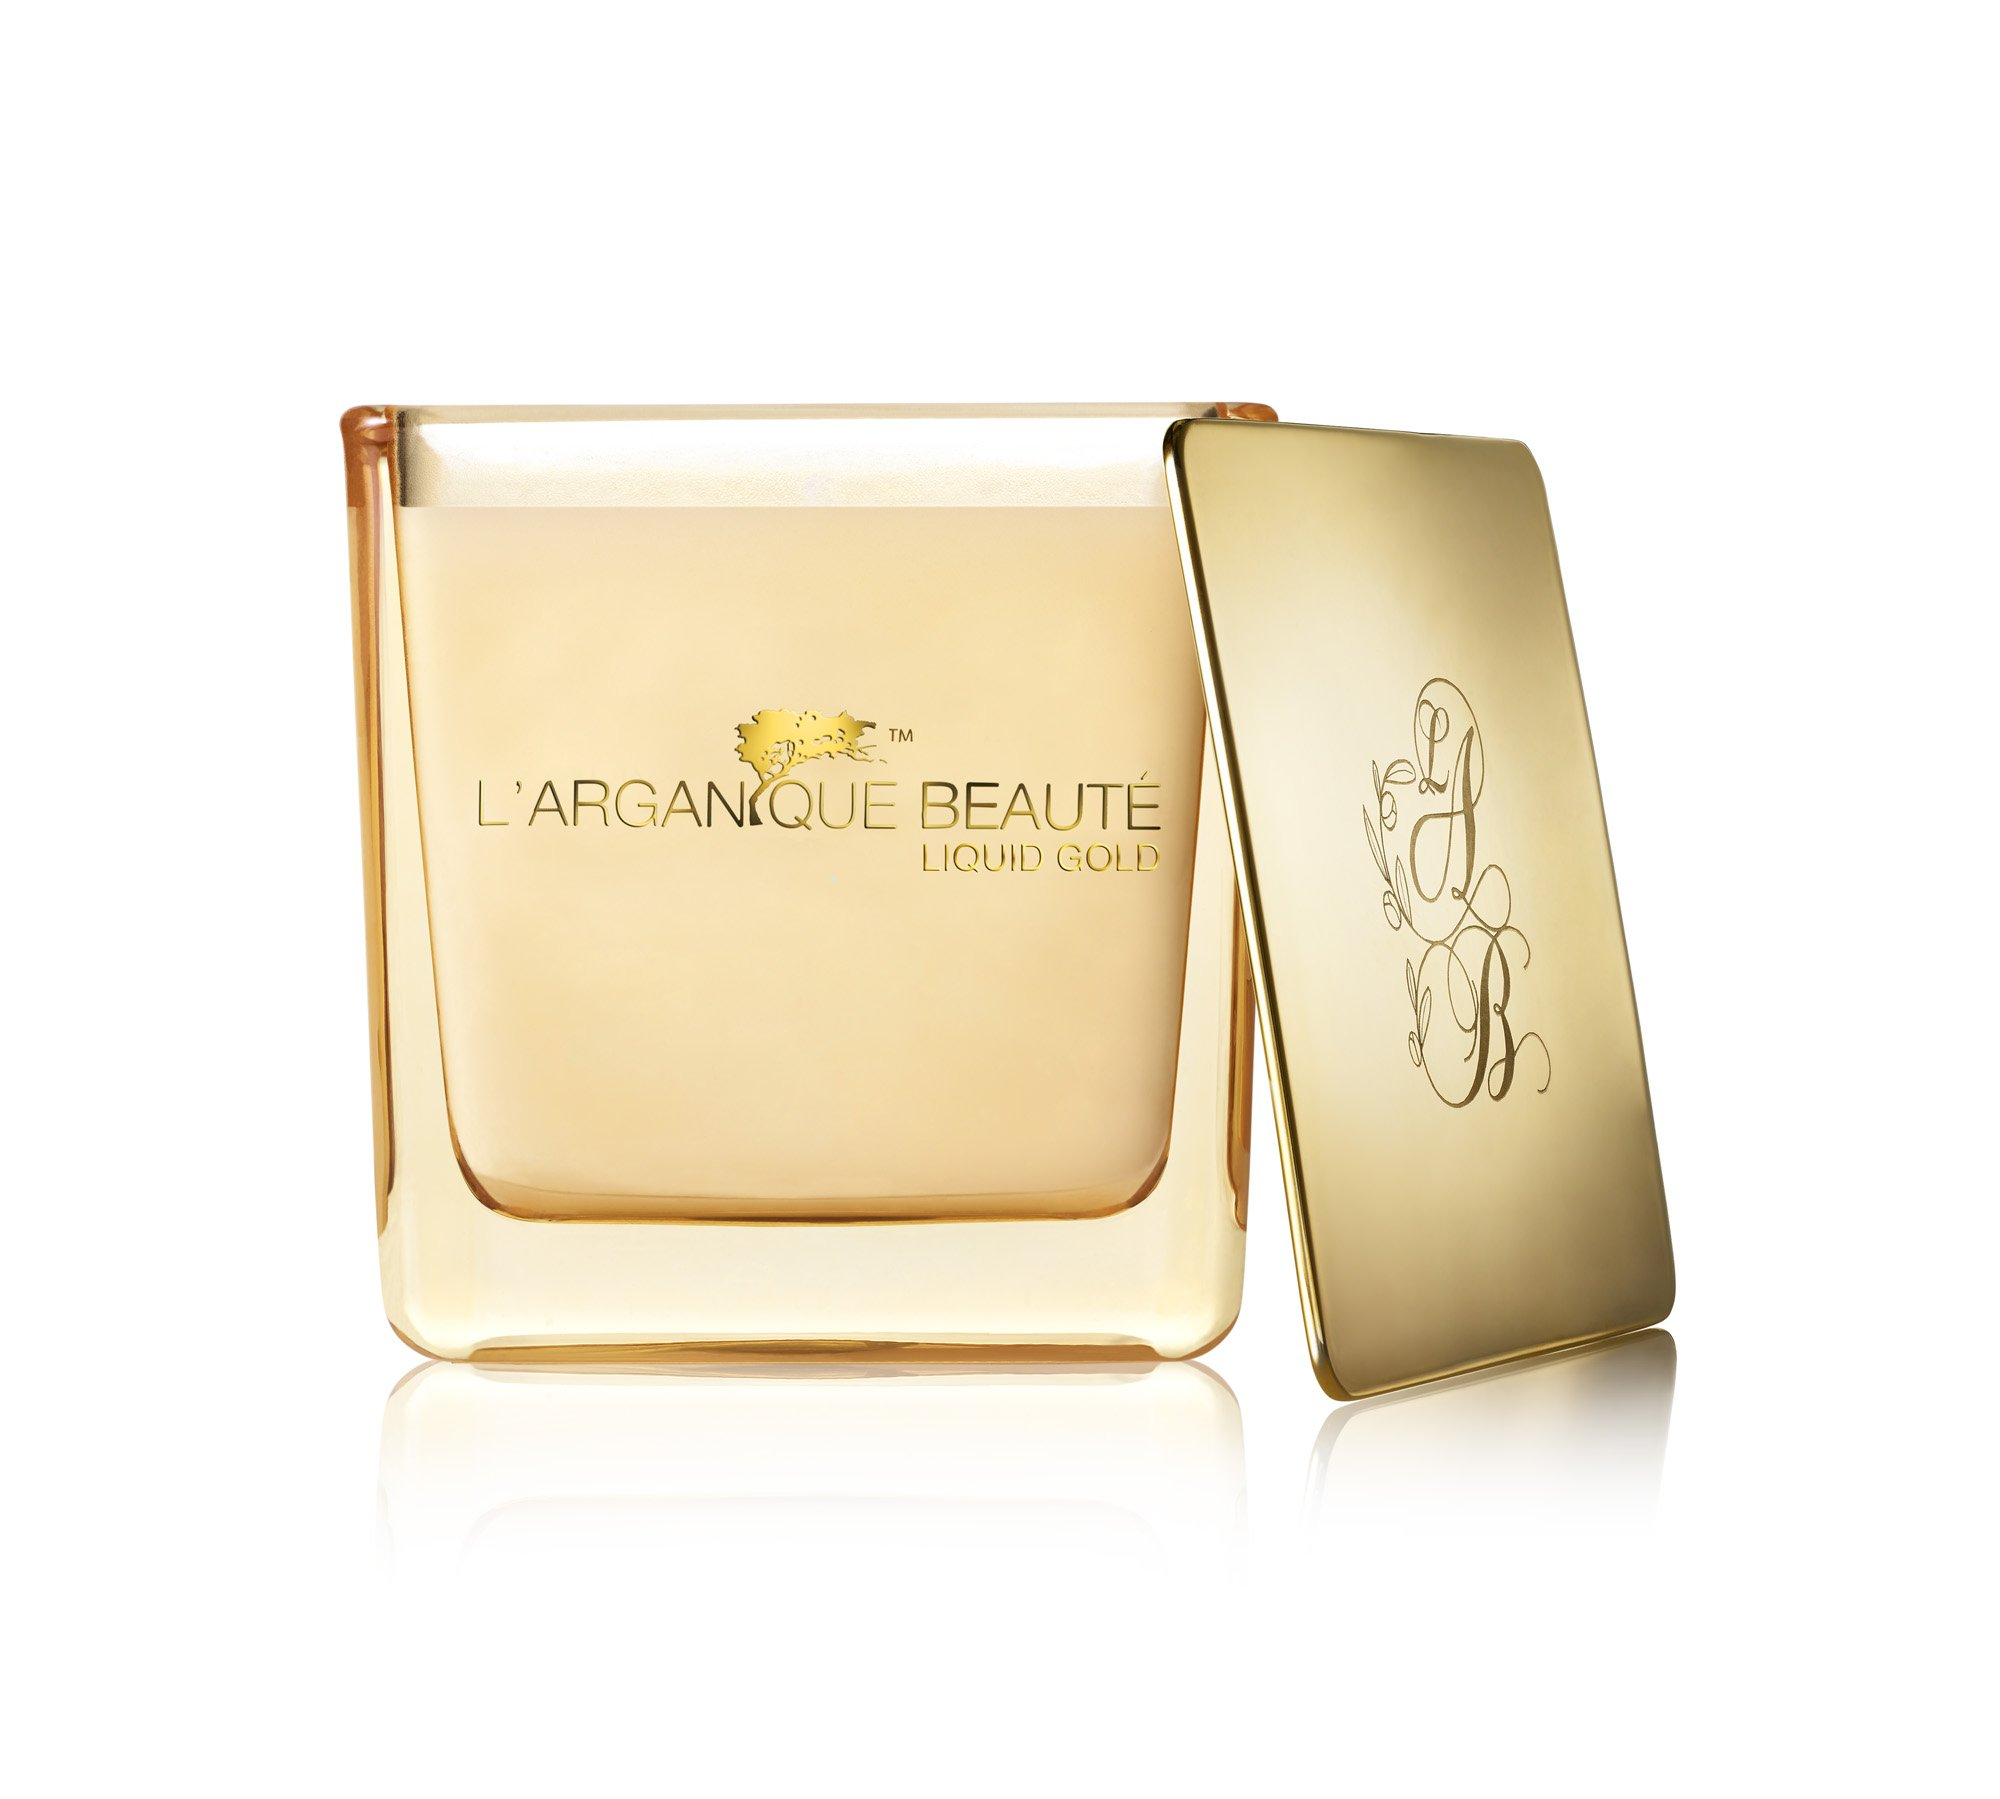 L'arganique Beauté Liquid Gold Luxury Scented Candle, Perfumed Fragrance Spa Candle - Made w/ 100% Soy Wax, Lead-Free Wick, Pure Moroccan Argan Oil Essence; For Baths, Christmas,Gifts, (7.4oz)